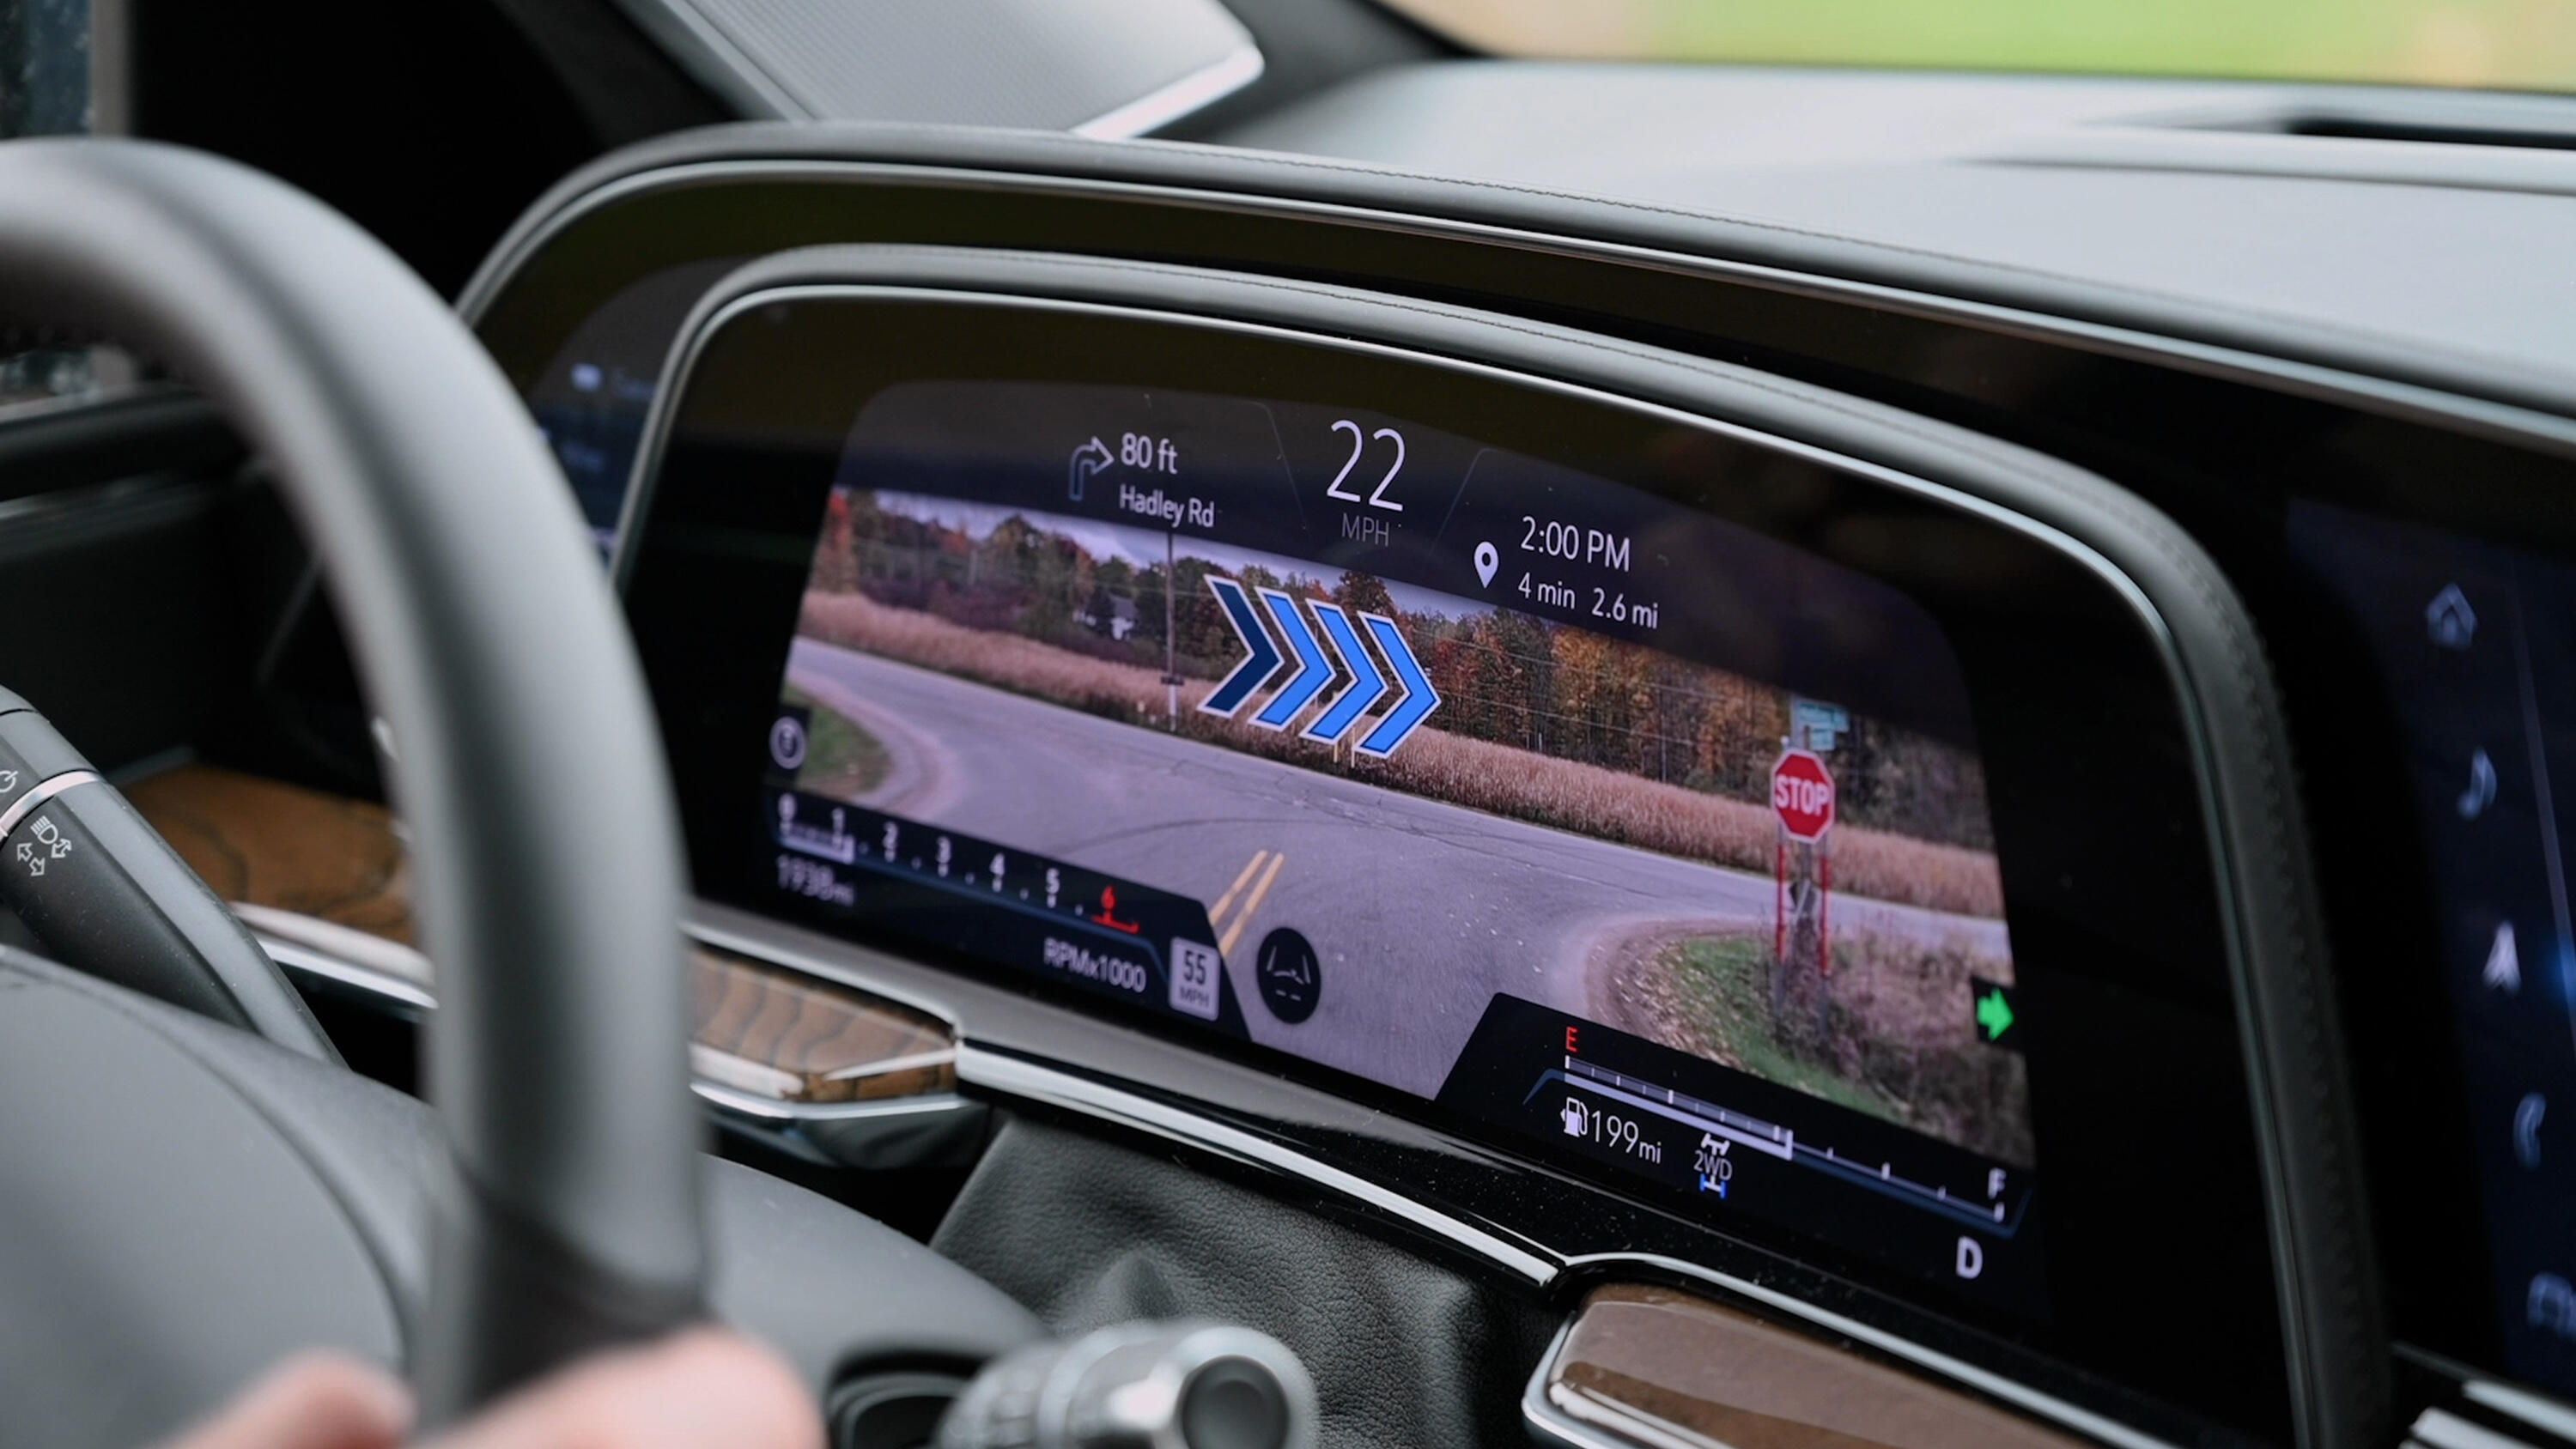 Video: So many screens: Here's what the 2021 Cadillac Escalade's displays can do